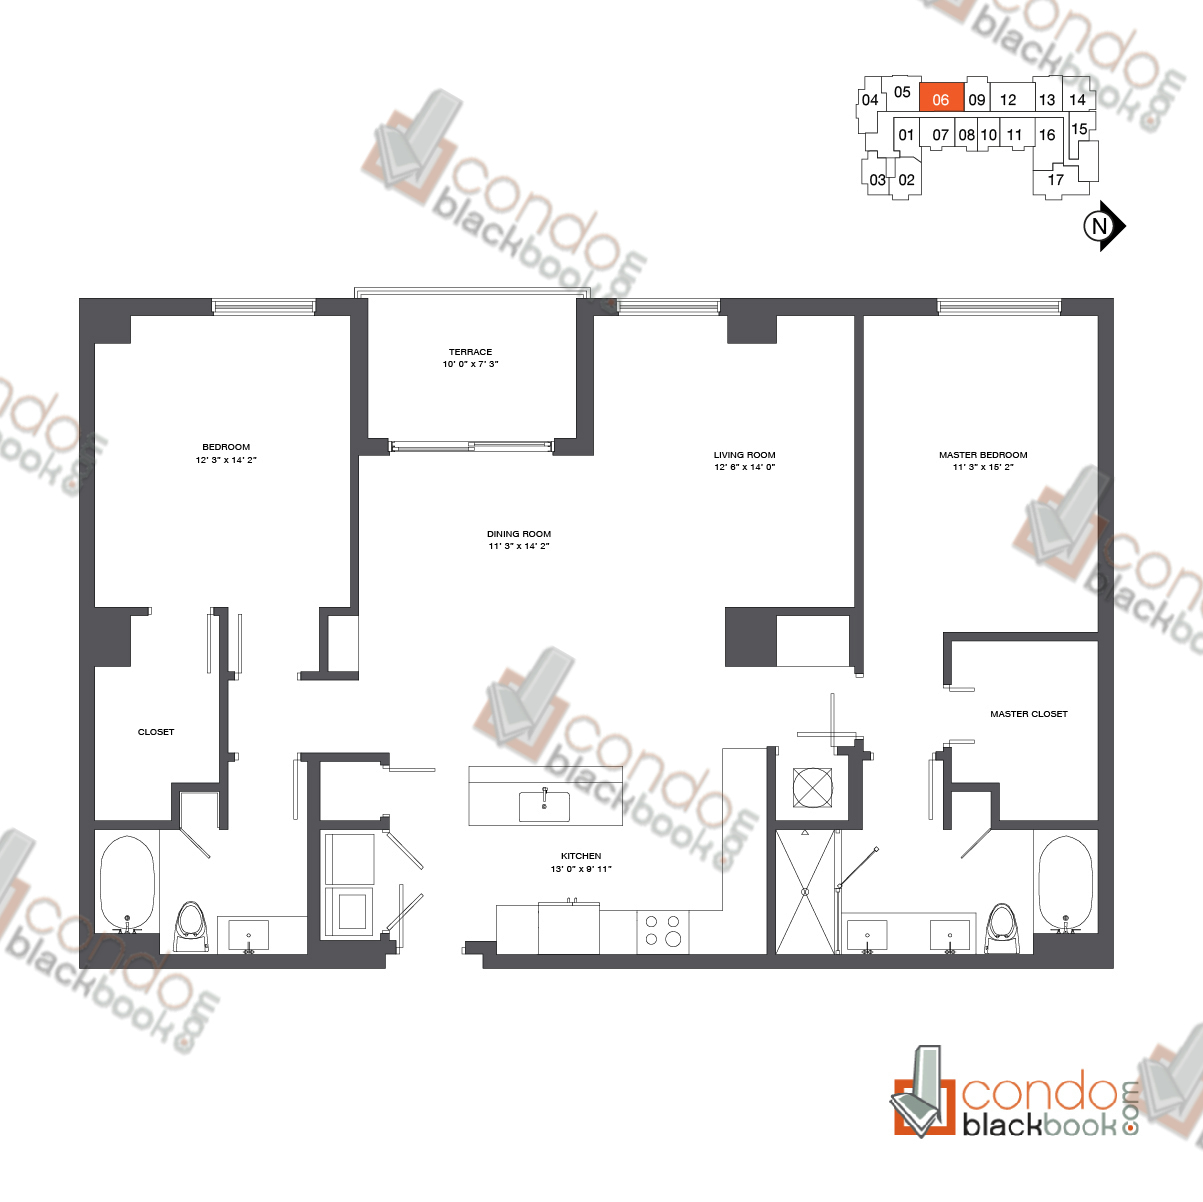 Floor plan for Nine at Mary Brickell Village Brickell Miami, model Residence 12-33_06, line 06, 2/2 bedrooms, 1,484 sq ft